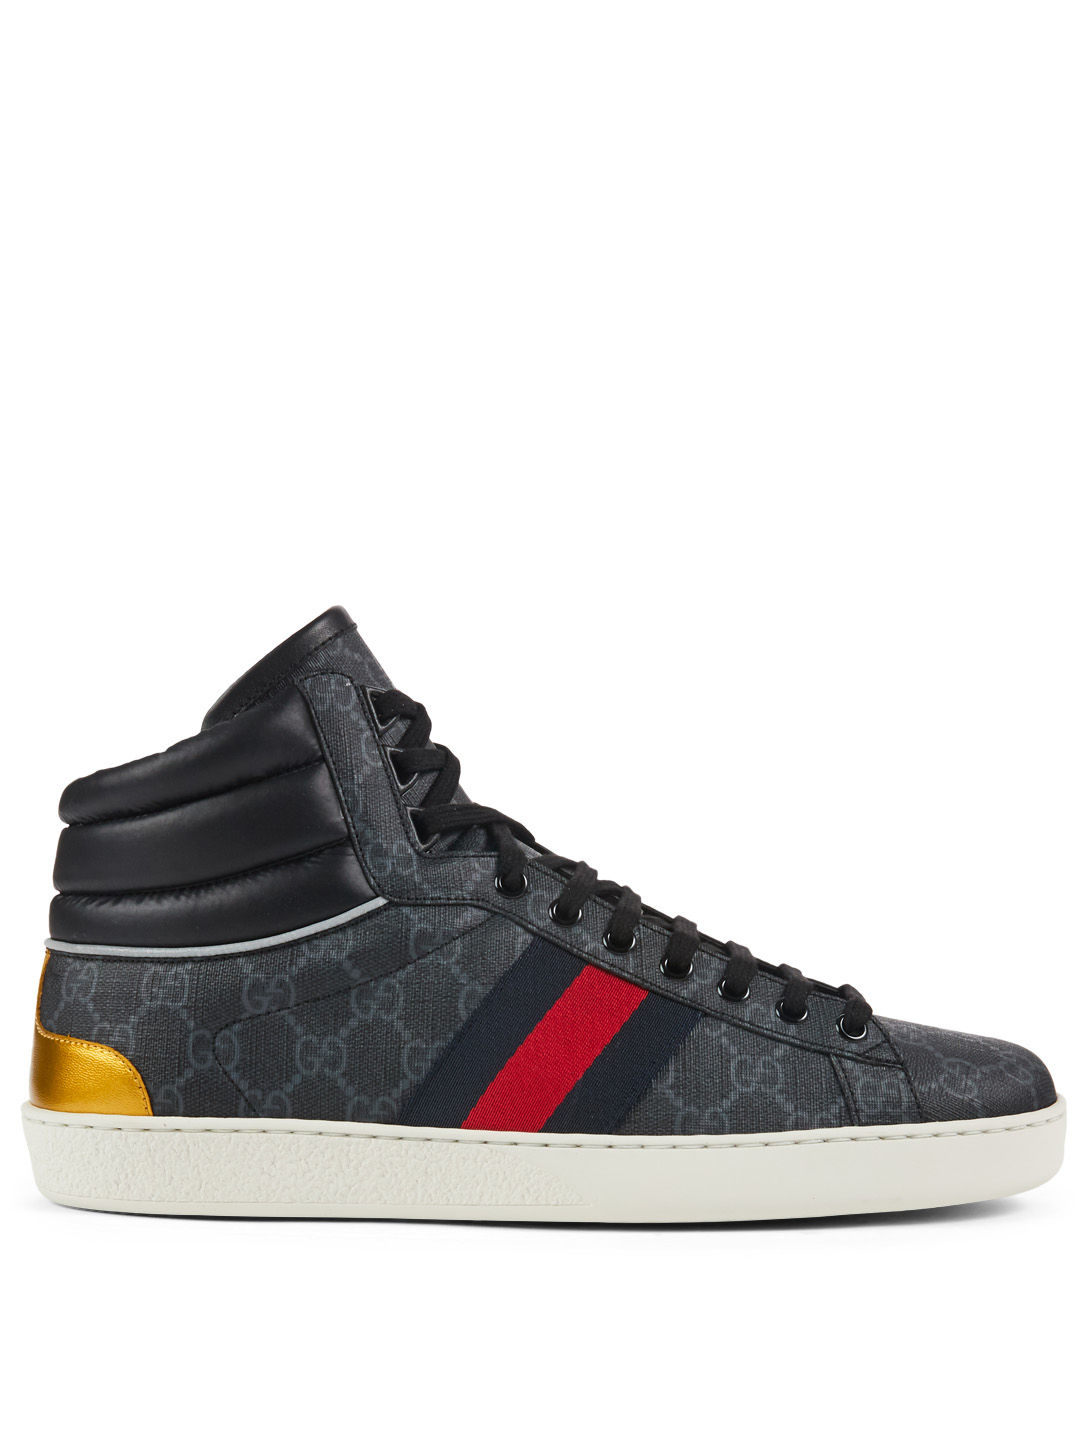 19082b79ed6 GUCCI Ace GG Supreme Canvas High-Top Sneakers